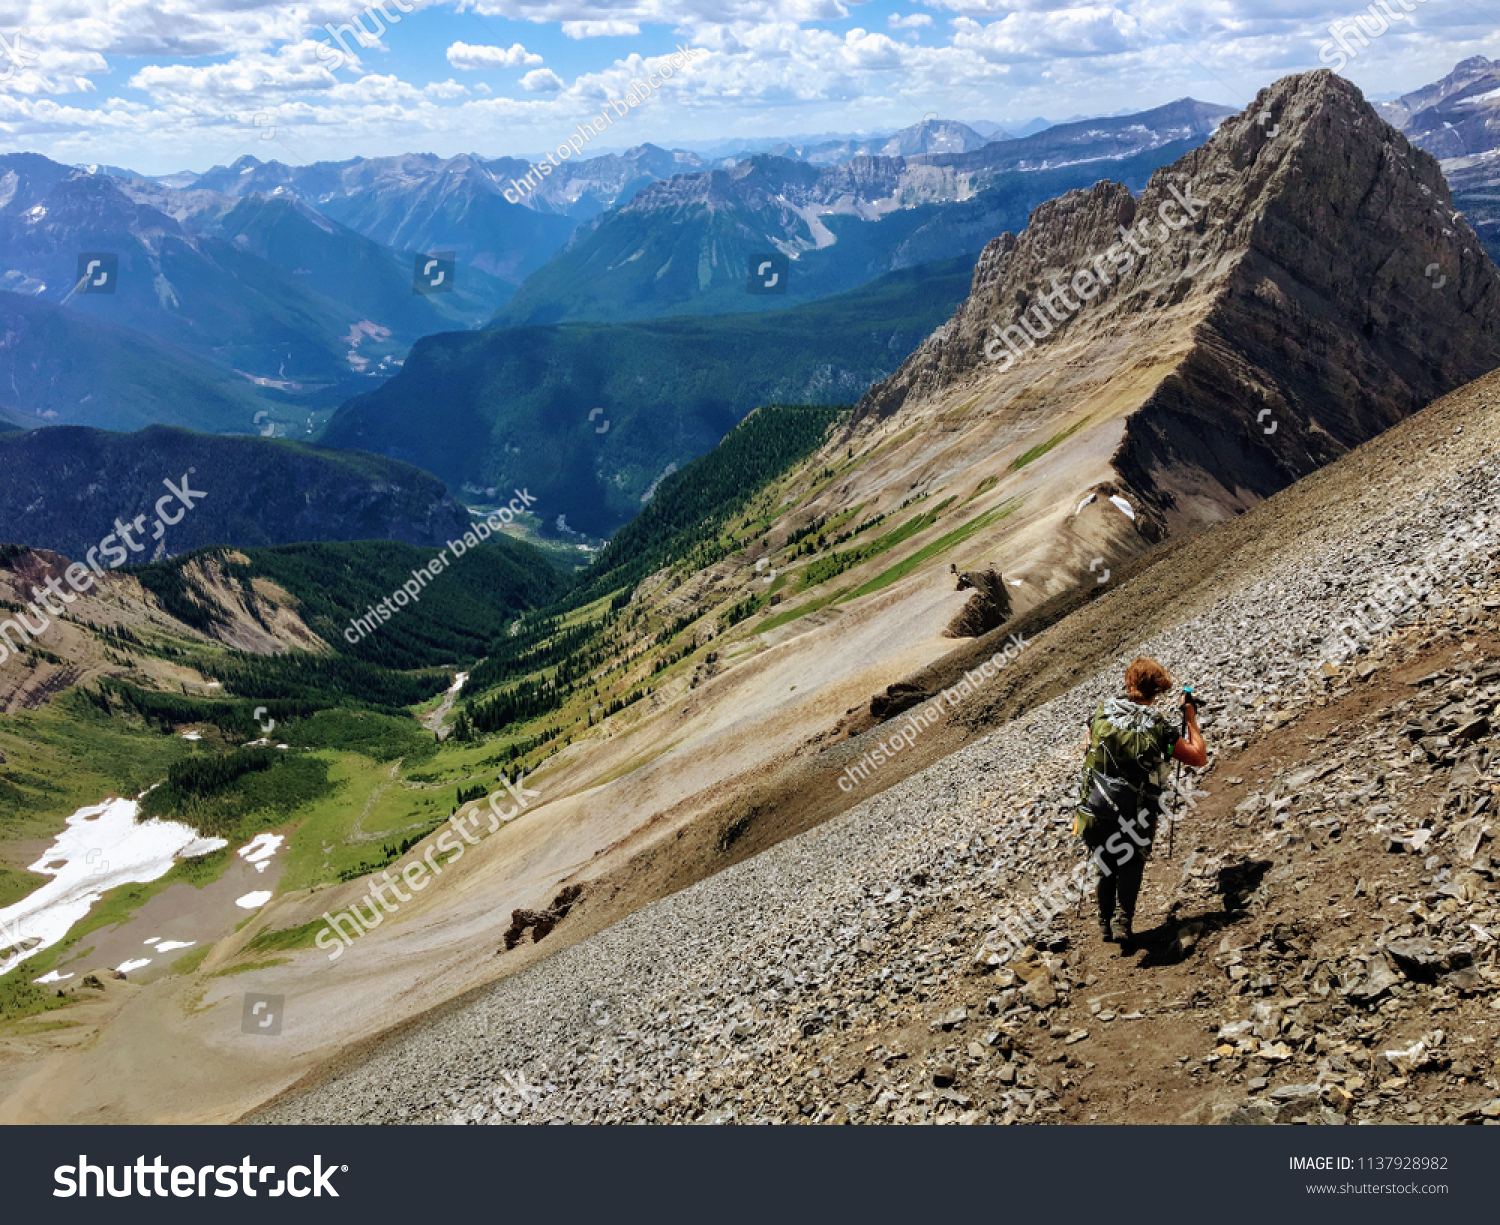 stock-photo-a-young-hiker-exploring-the-rocky-mountains-on-a-backcountry-hike-along-the-spectacular-northover-1137928982.jpg